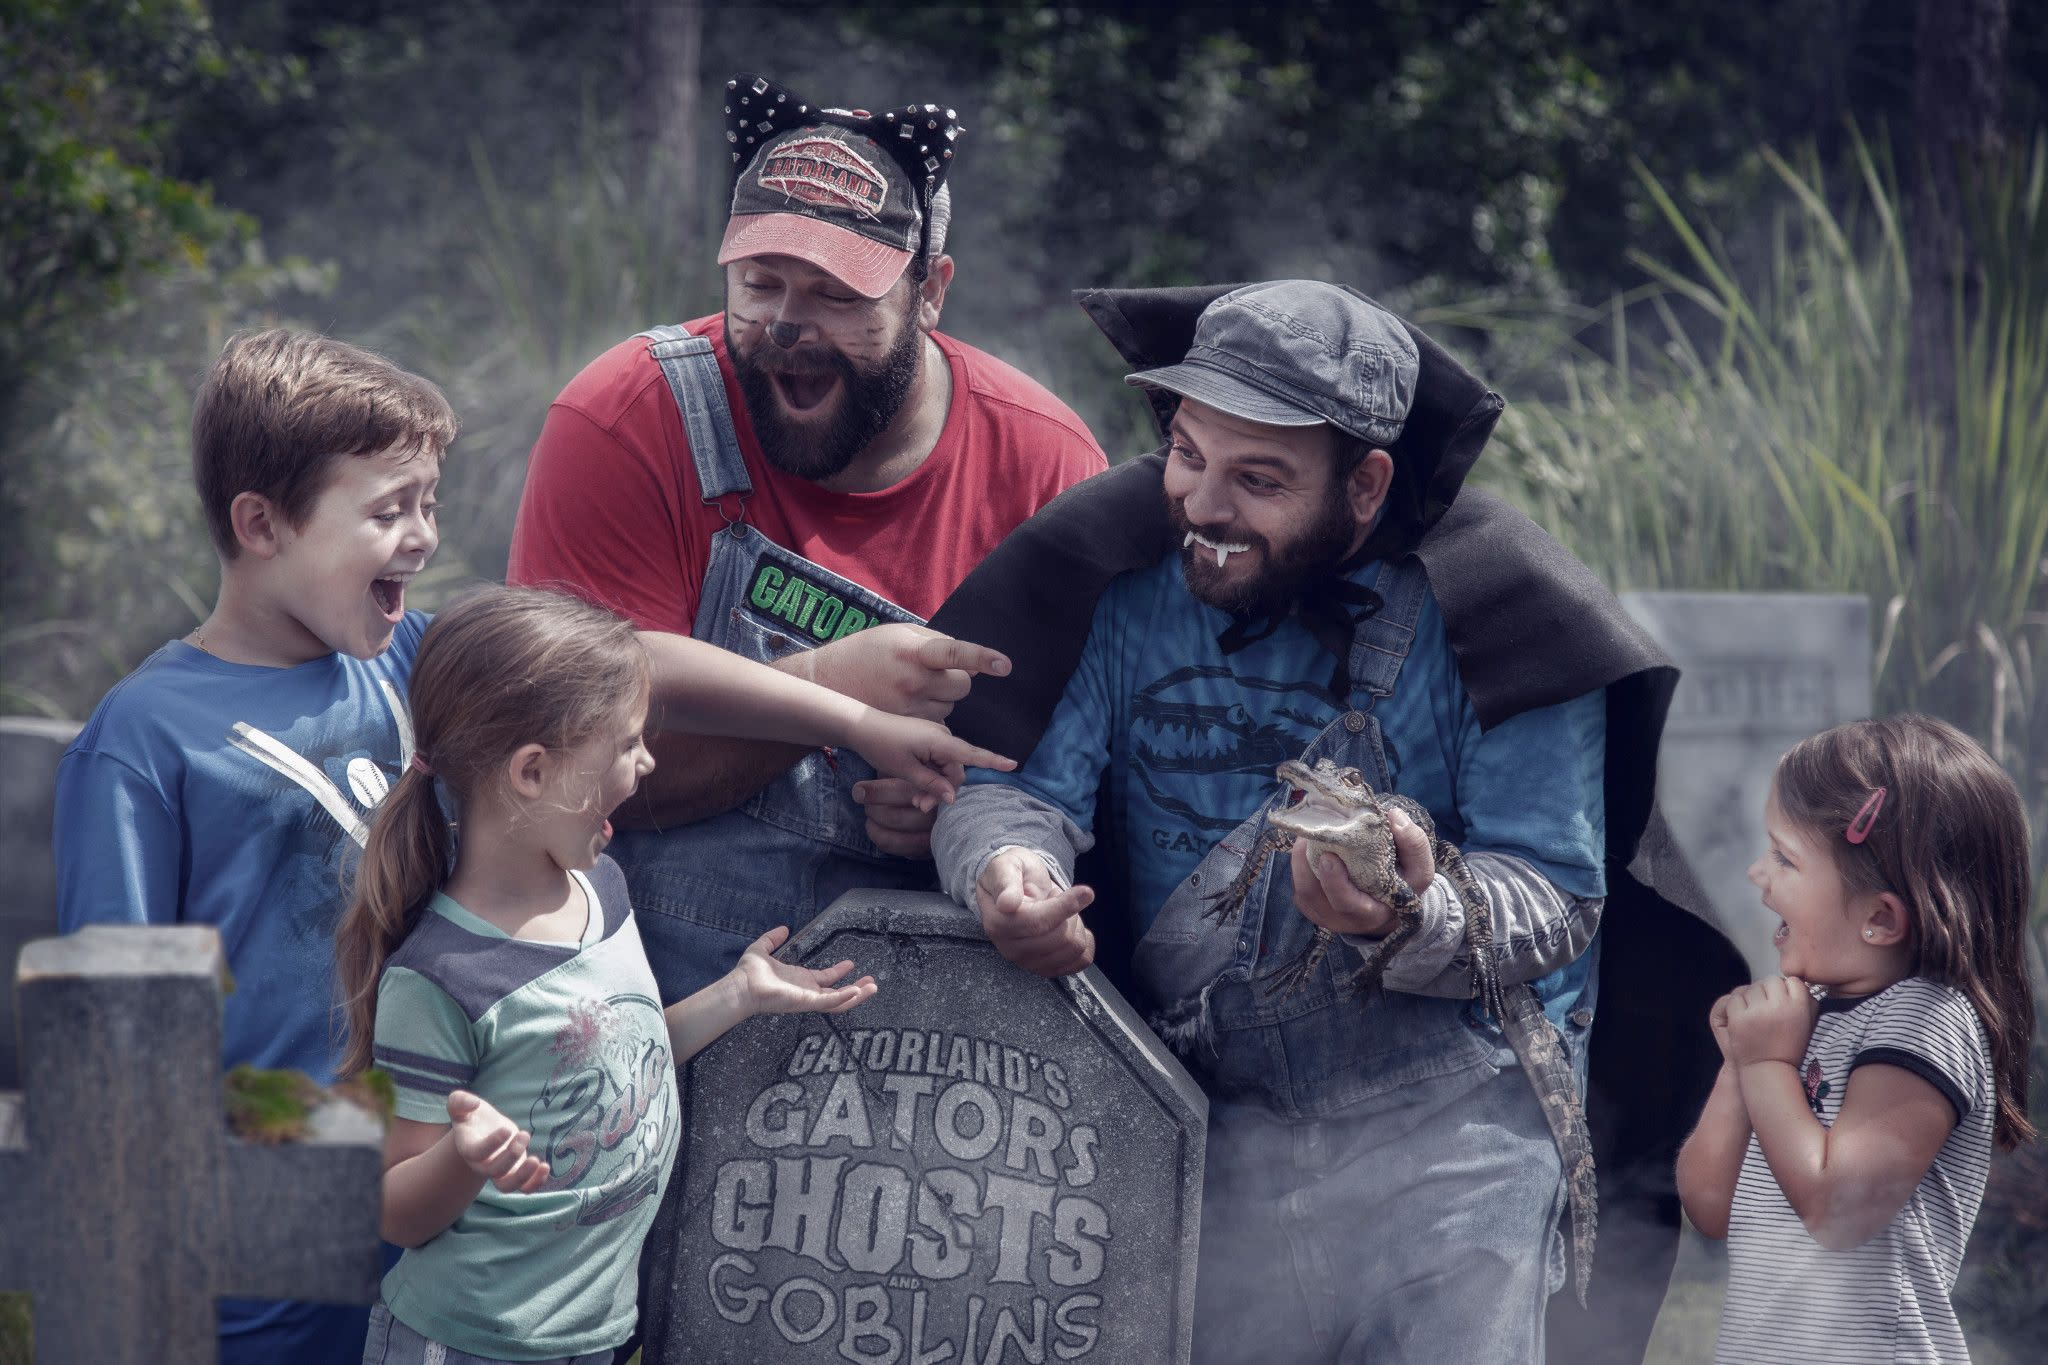 Gators, Ghosts and Goblins at Gatorland in Orlando